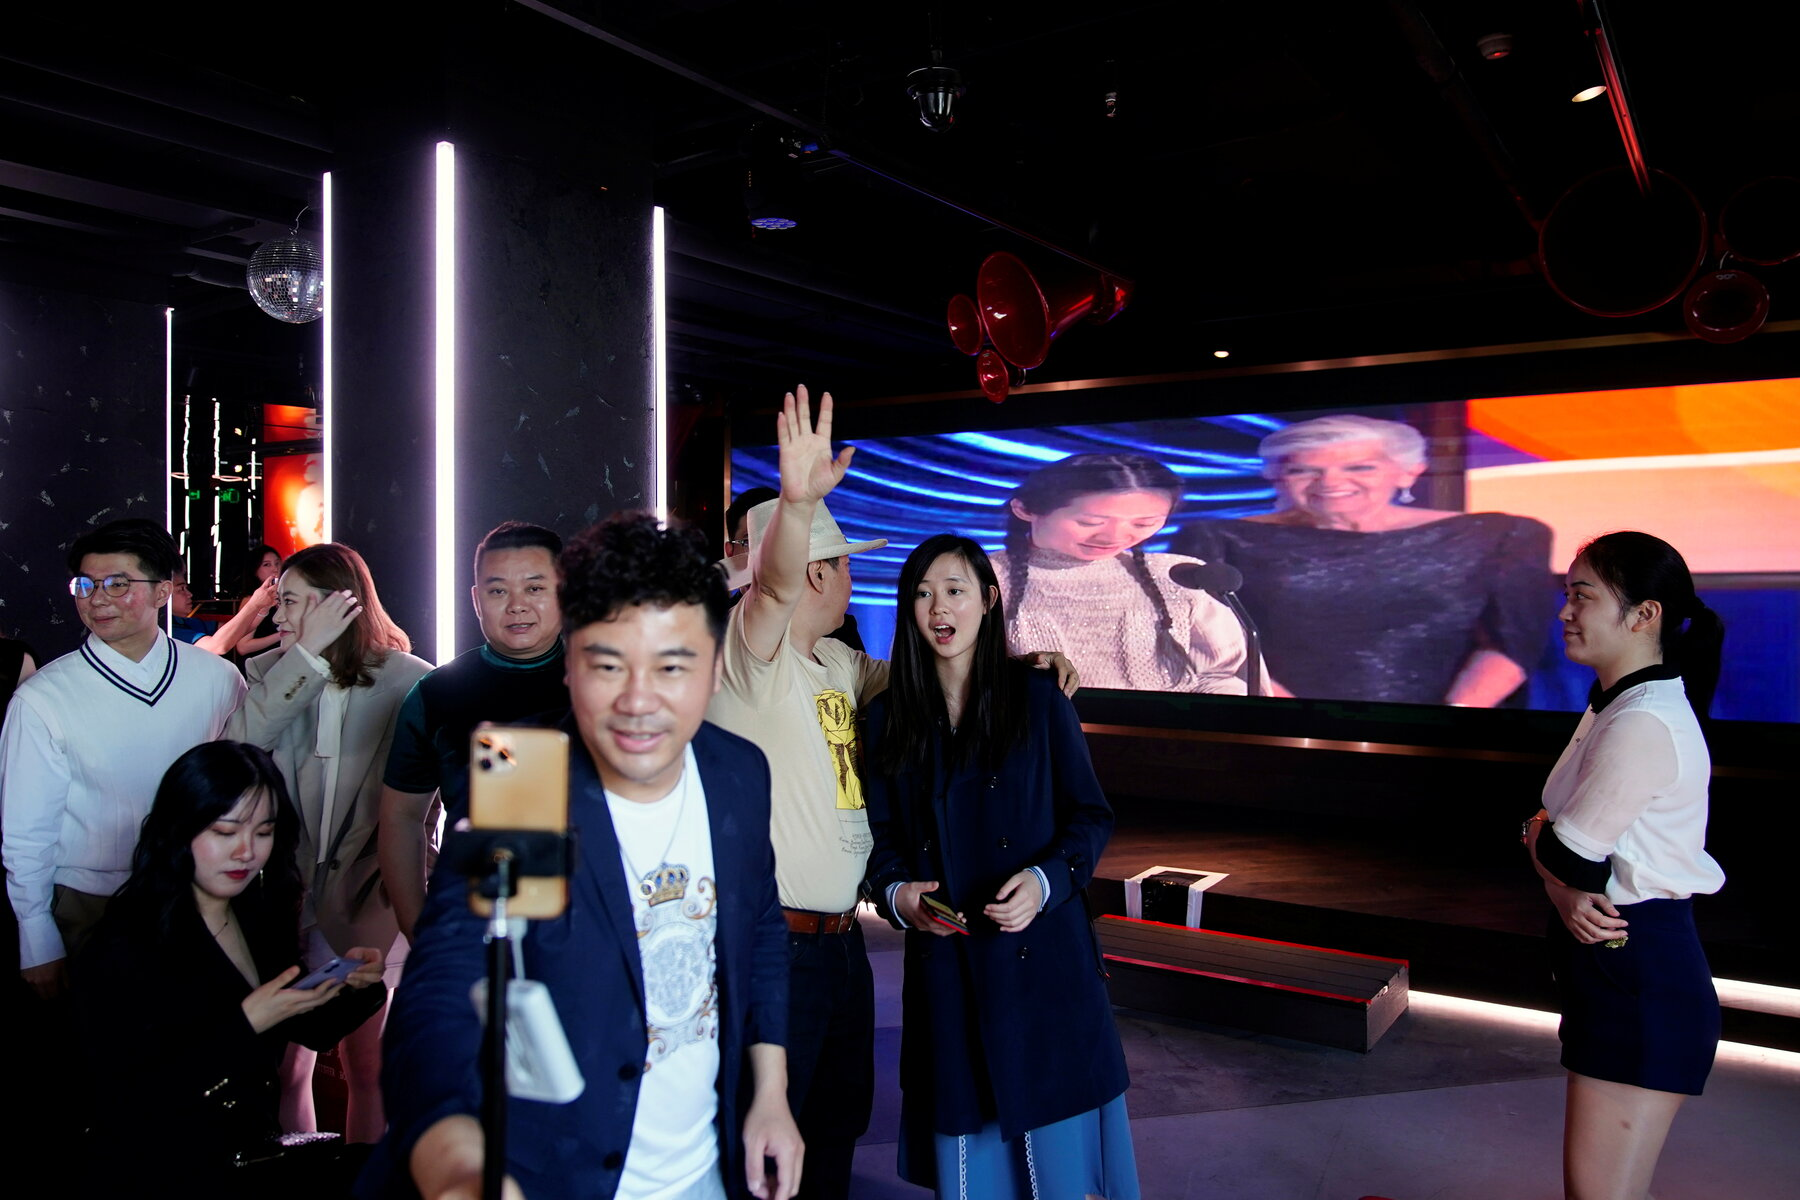 A screening of the Academy Awards, hosted by the Alumni Society of New York University, at a bar in Shanghai